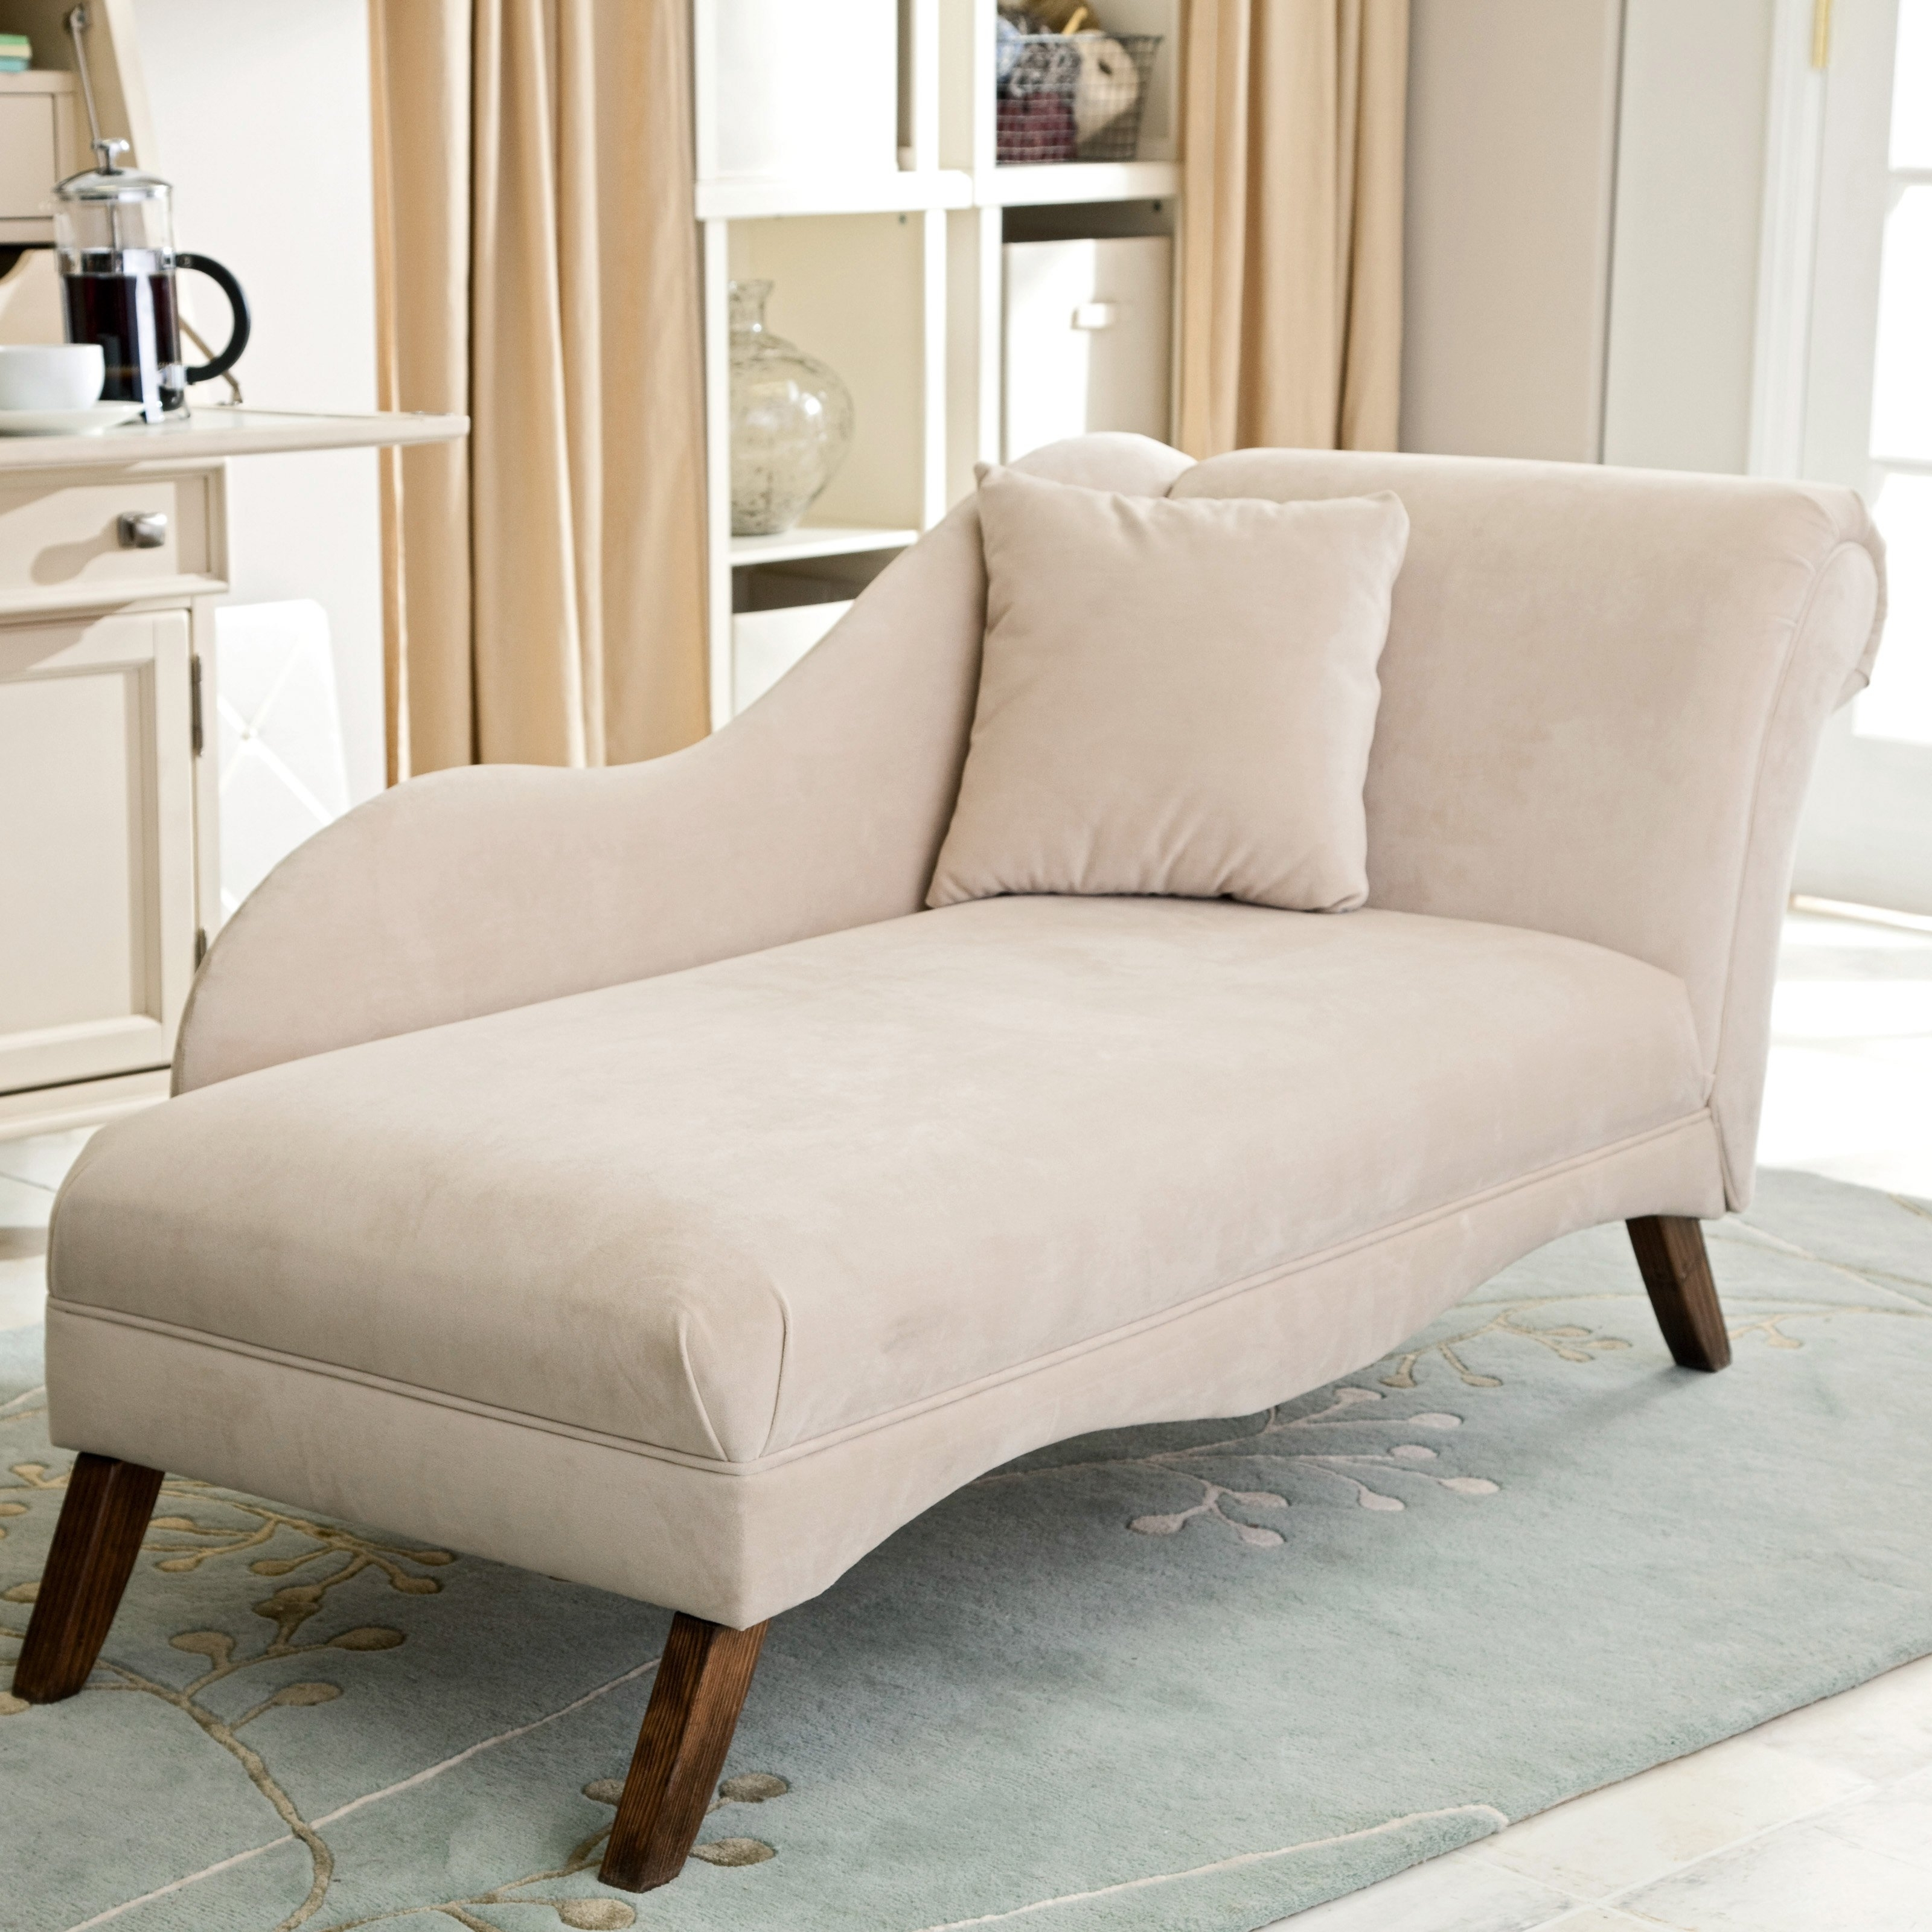 Indoor Chaise Lounge Chairs Regarding Famous Leather Chaise Lounge Chairs Indoors • Lounge Chairs Ideas (View 7 of 15)